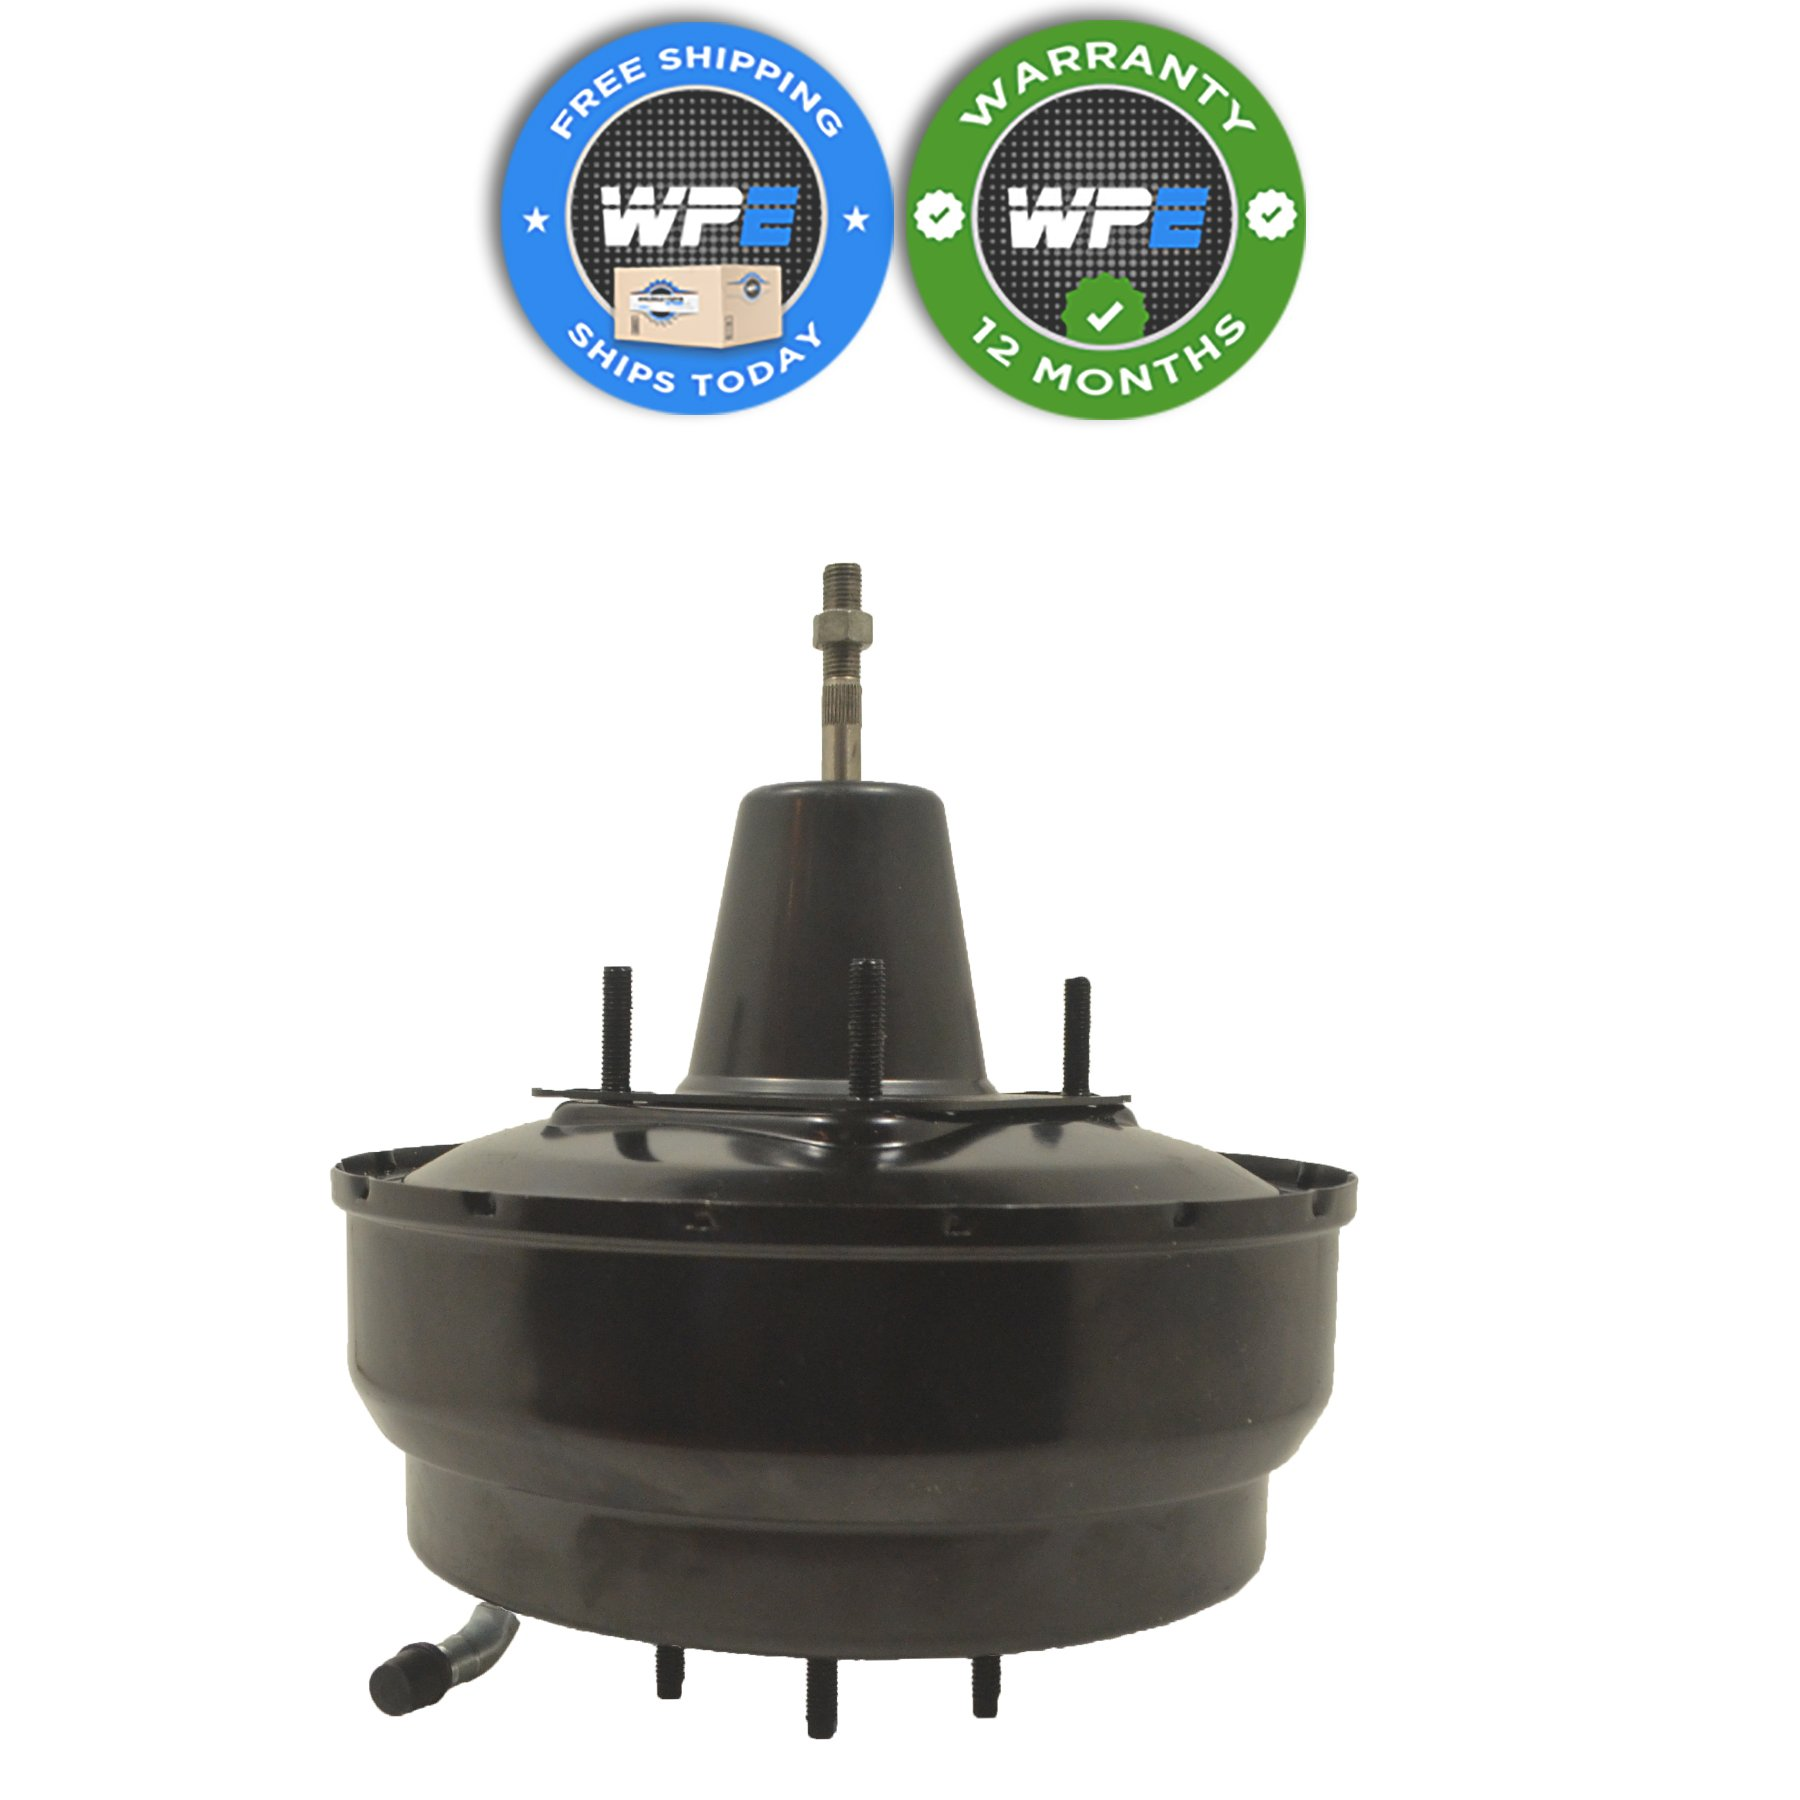 New Power Brake Booster Fits 1995-2001 Toyota Tacoma